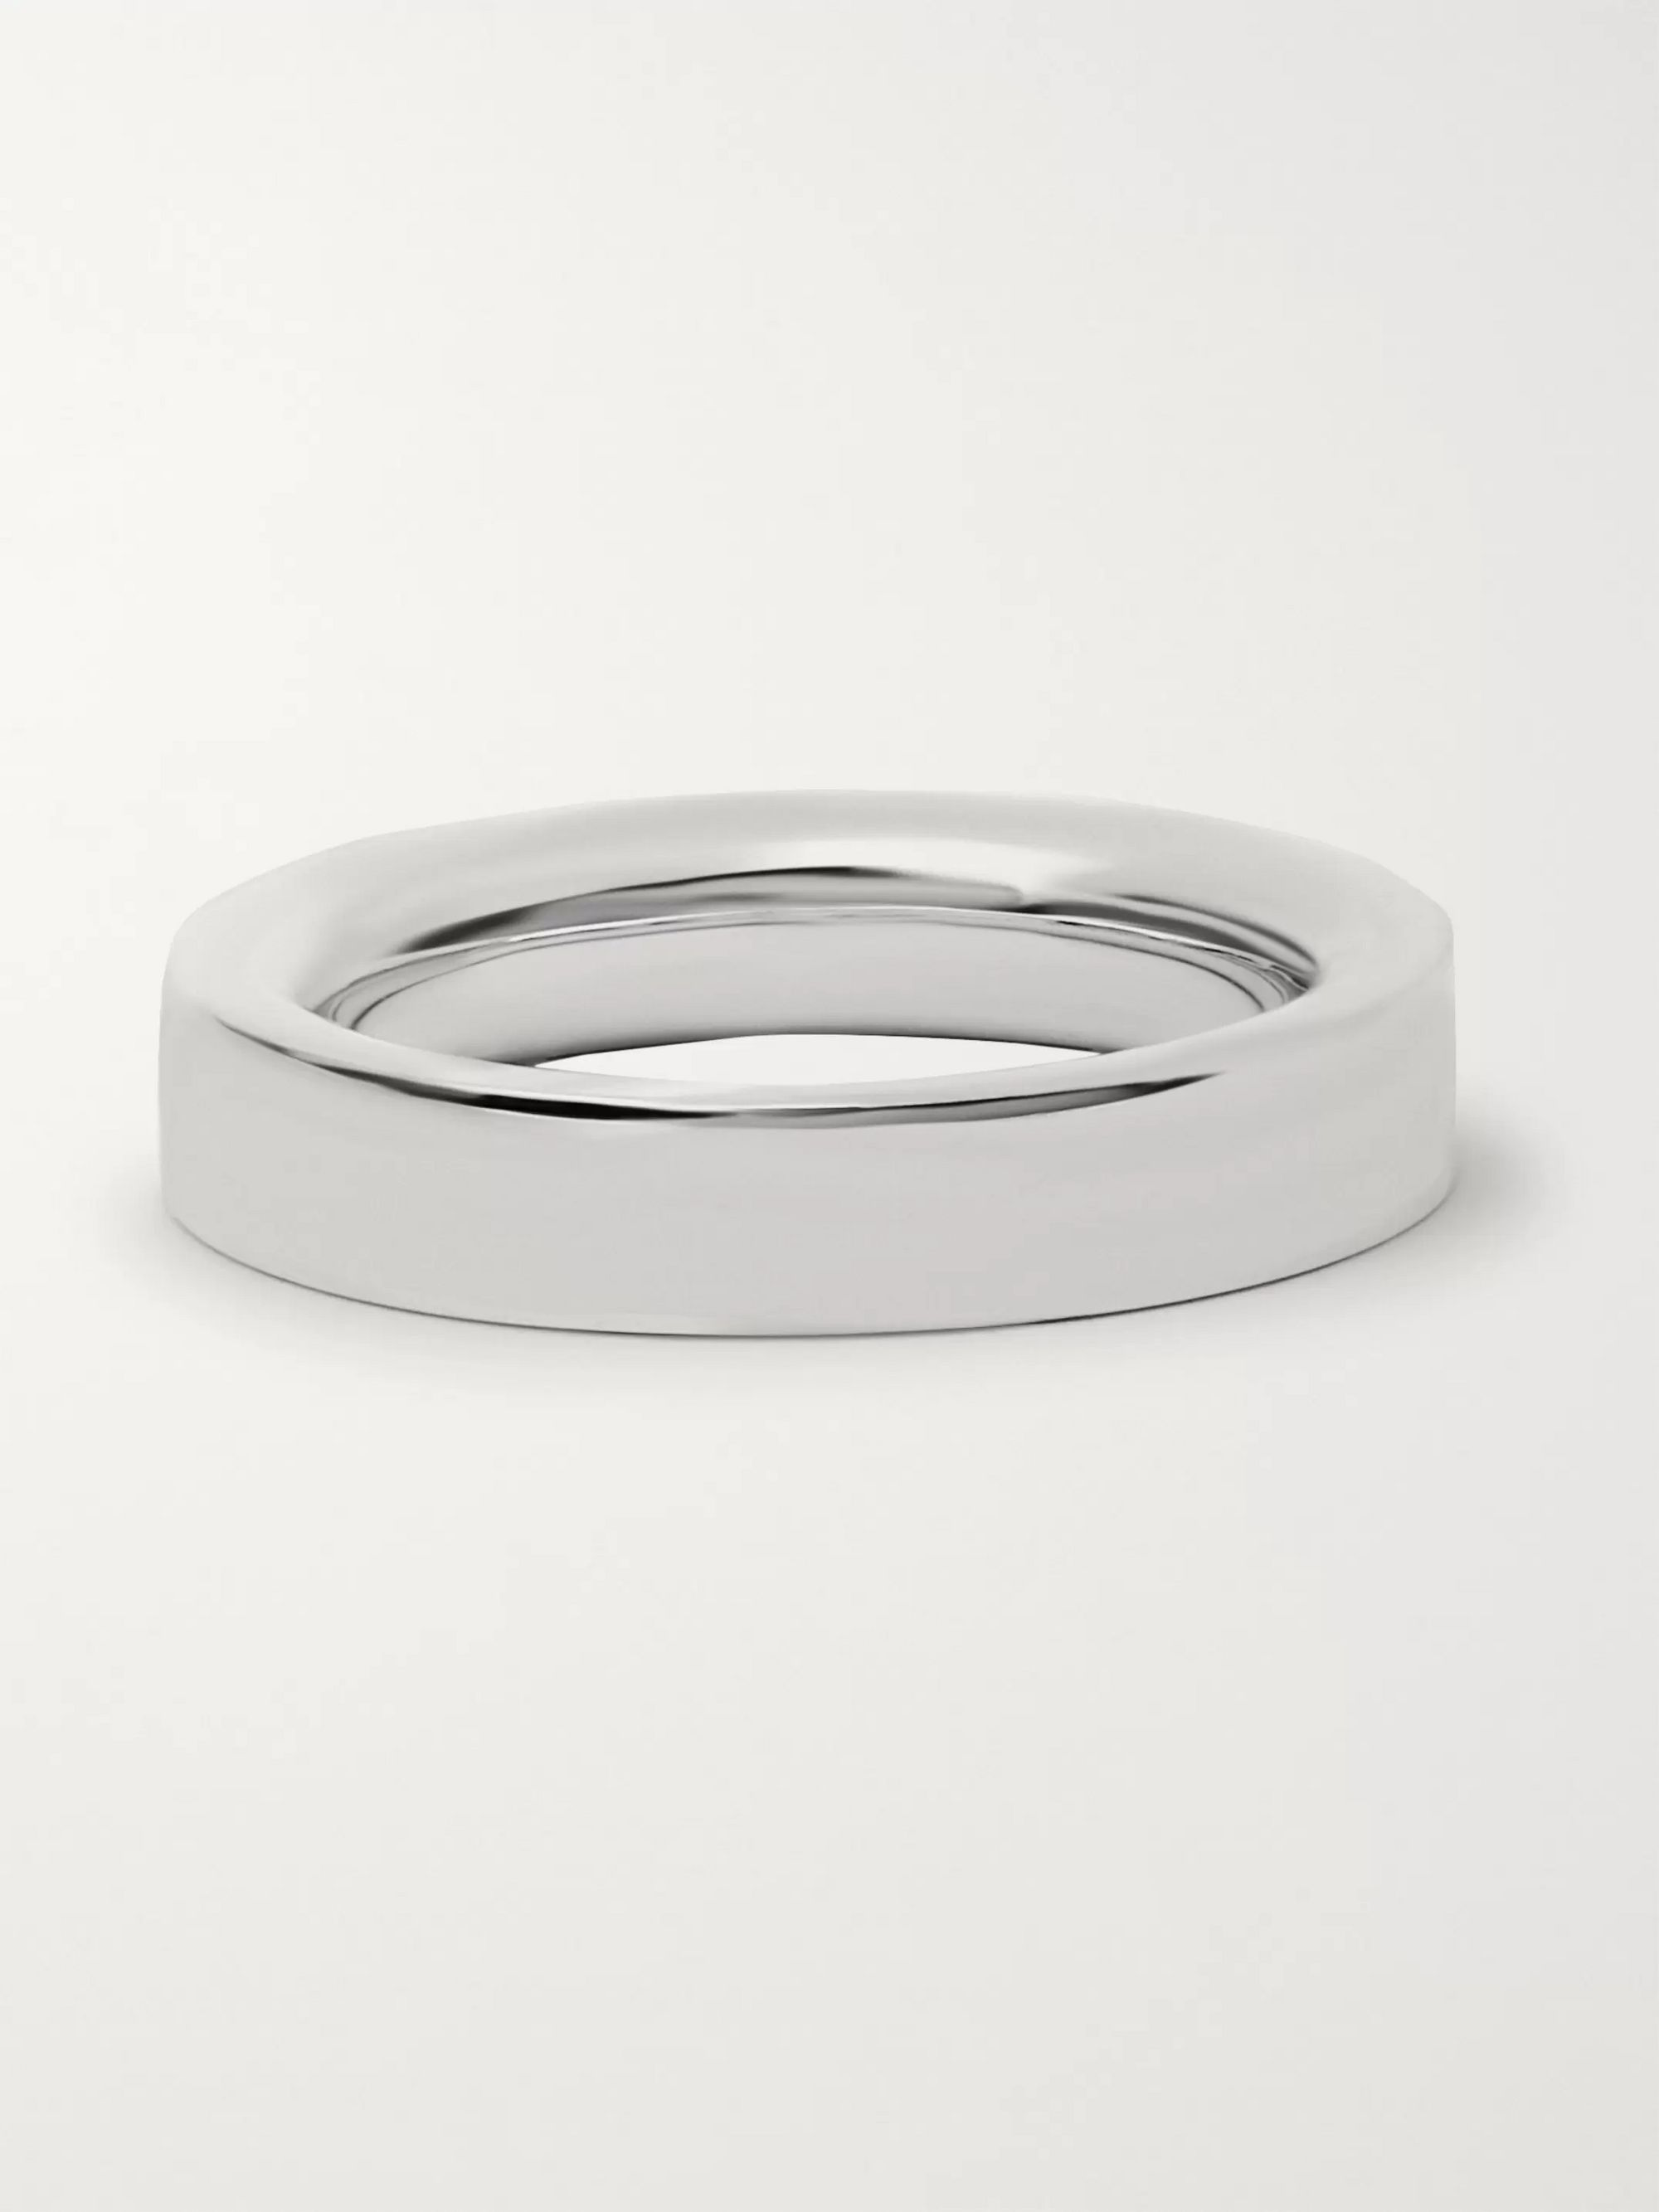 Alice Made This P6 Bancroft Silver Ring